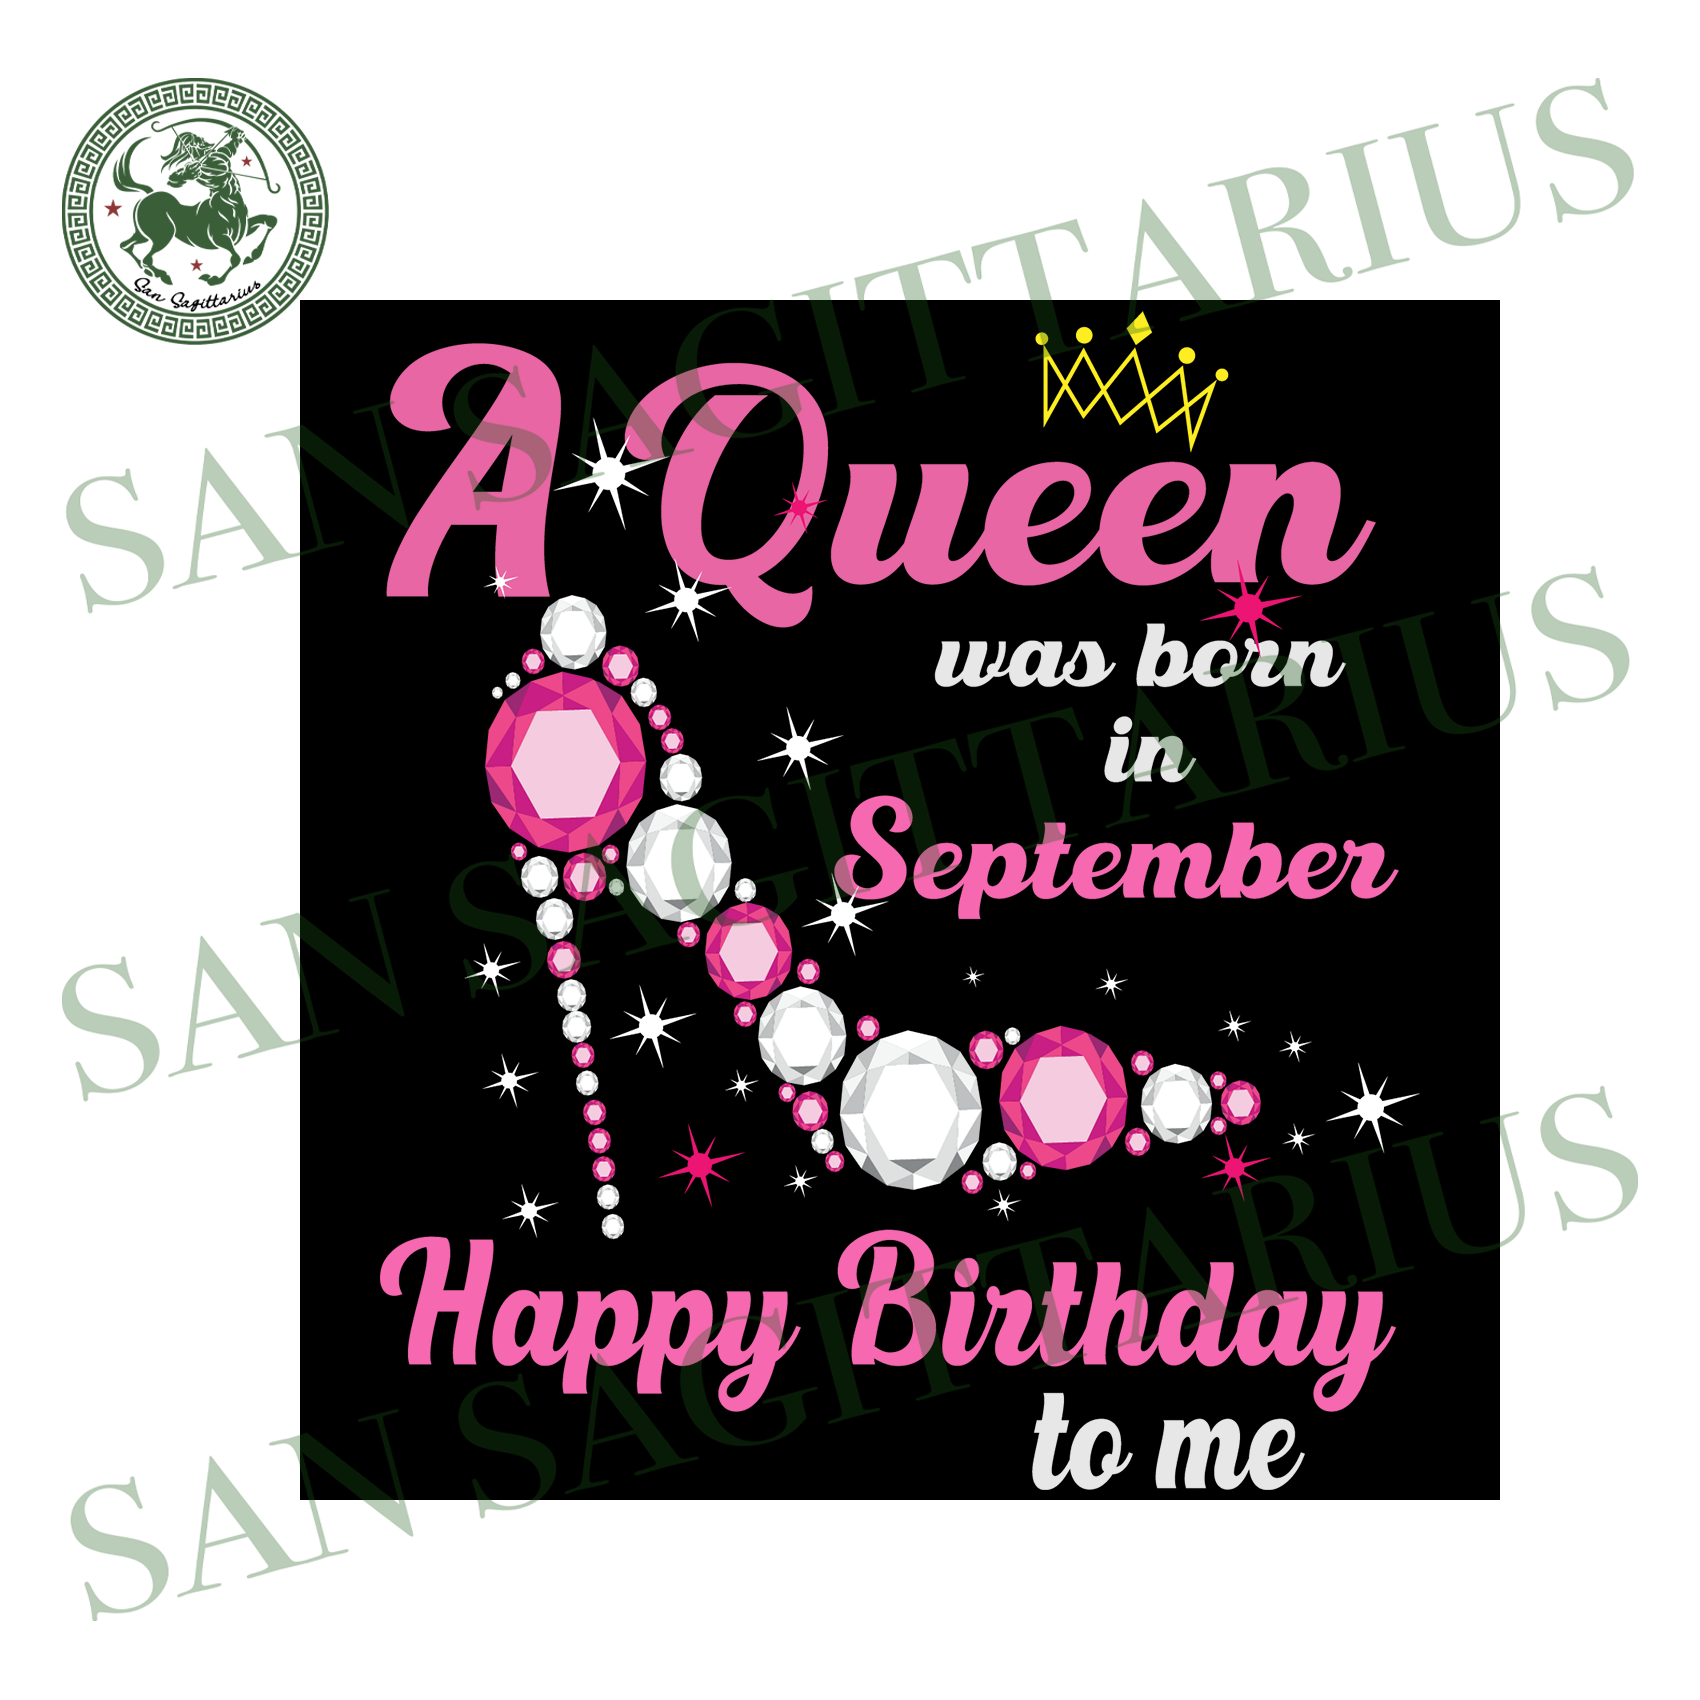 A queen was born in september svg,svg,september birthday svg,september gift,born in september svg,birthday anniversary,svg cricut, silhouette svg files, cricut svg, silhouette svg, svg design